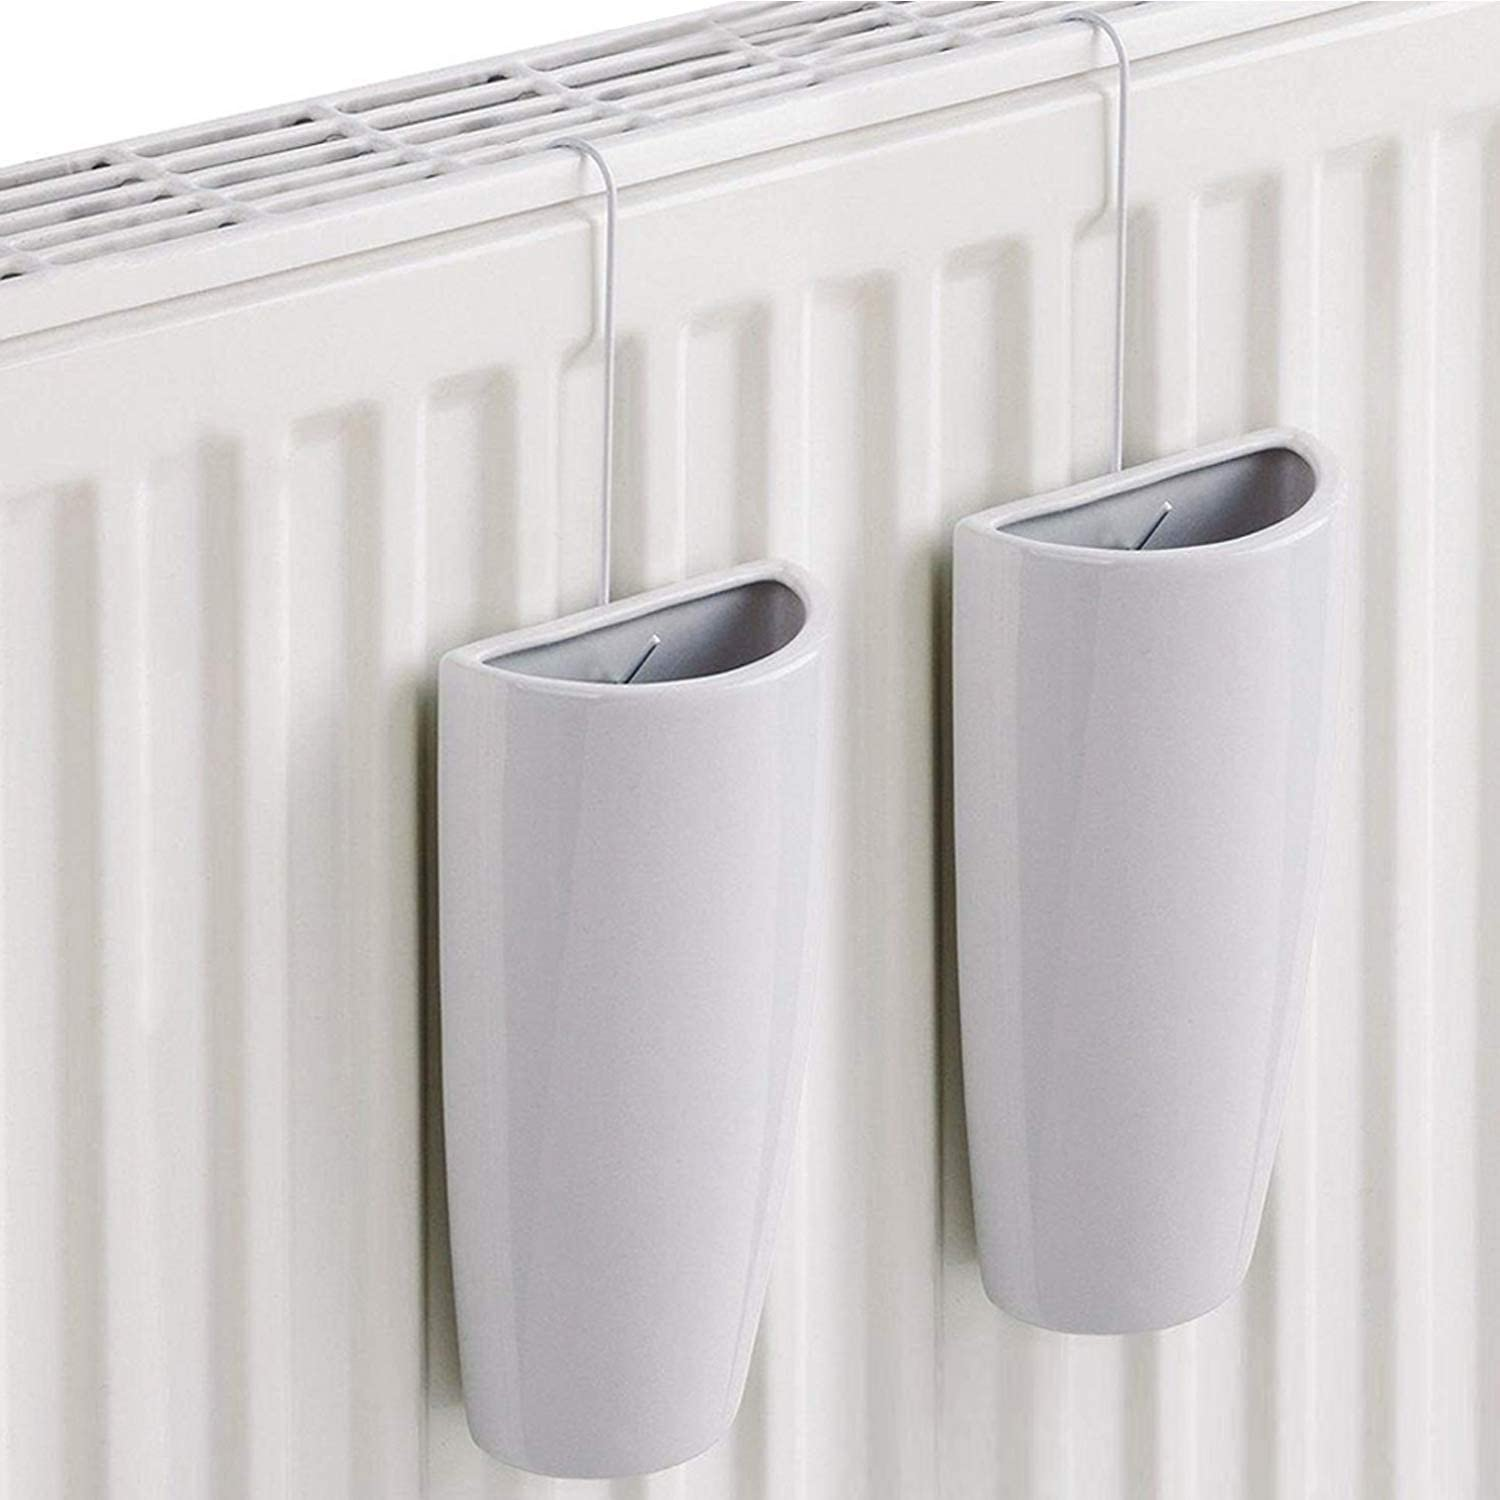 Ceramic Radiator Hanging Humidifiers Home Air Water Humidity